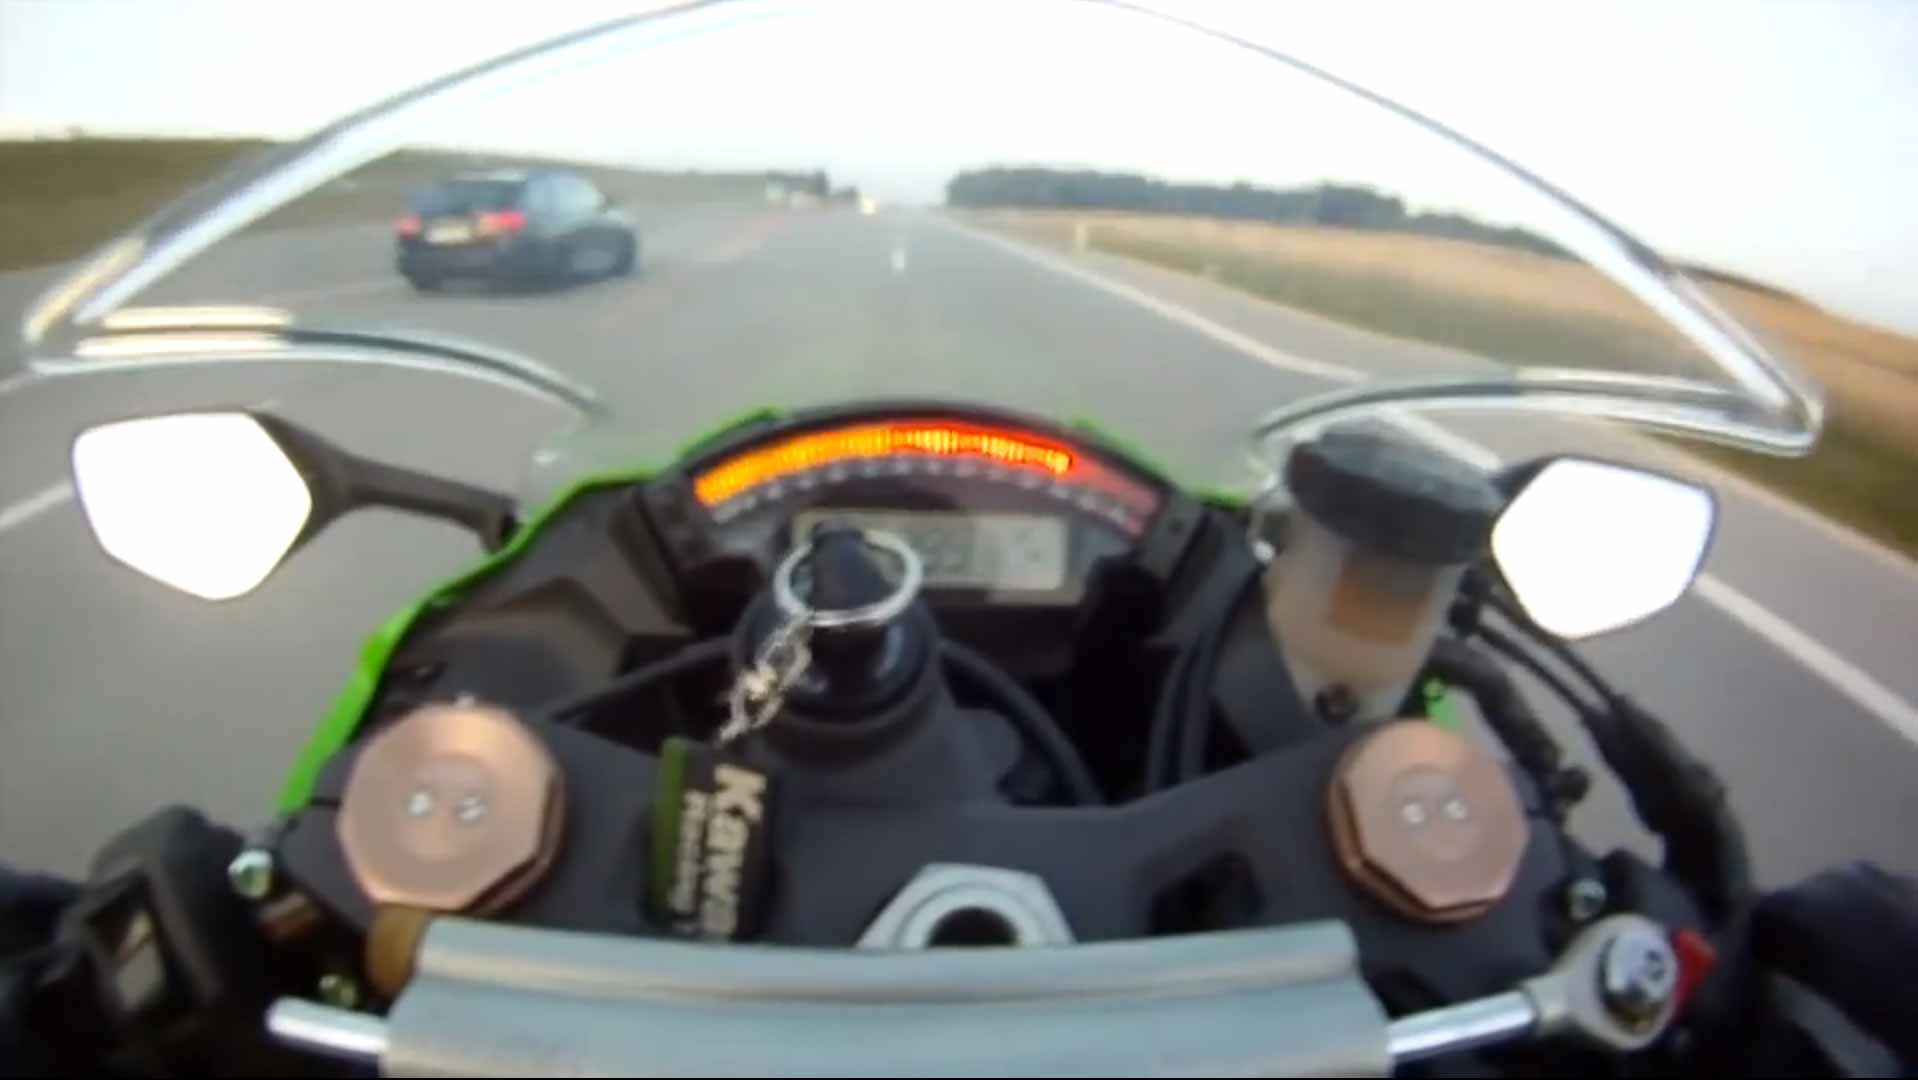 motorcycle driving 300km h on autobahn gets passed by audi rs6 autobahn gets passed by audi rs6